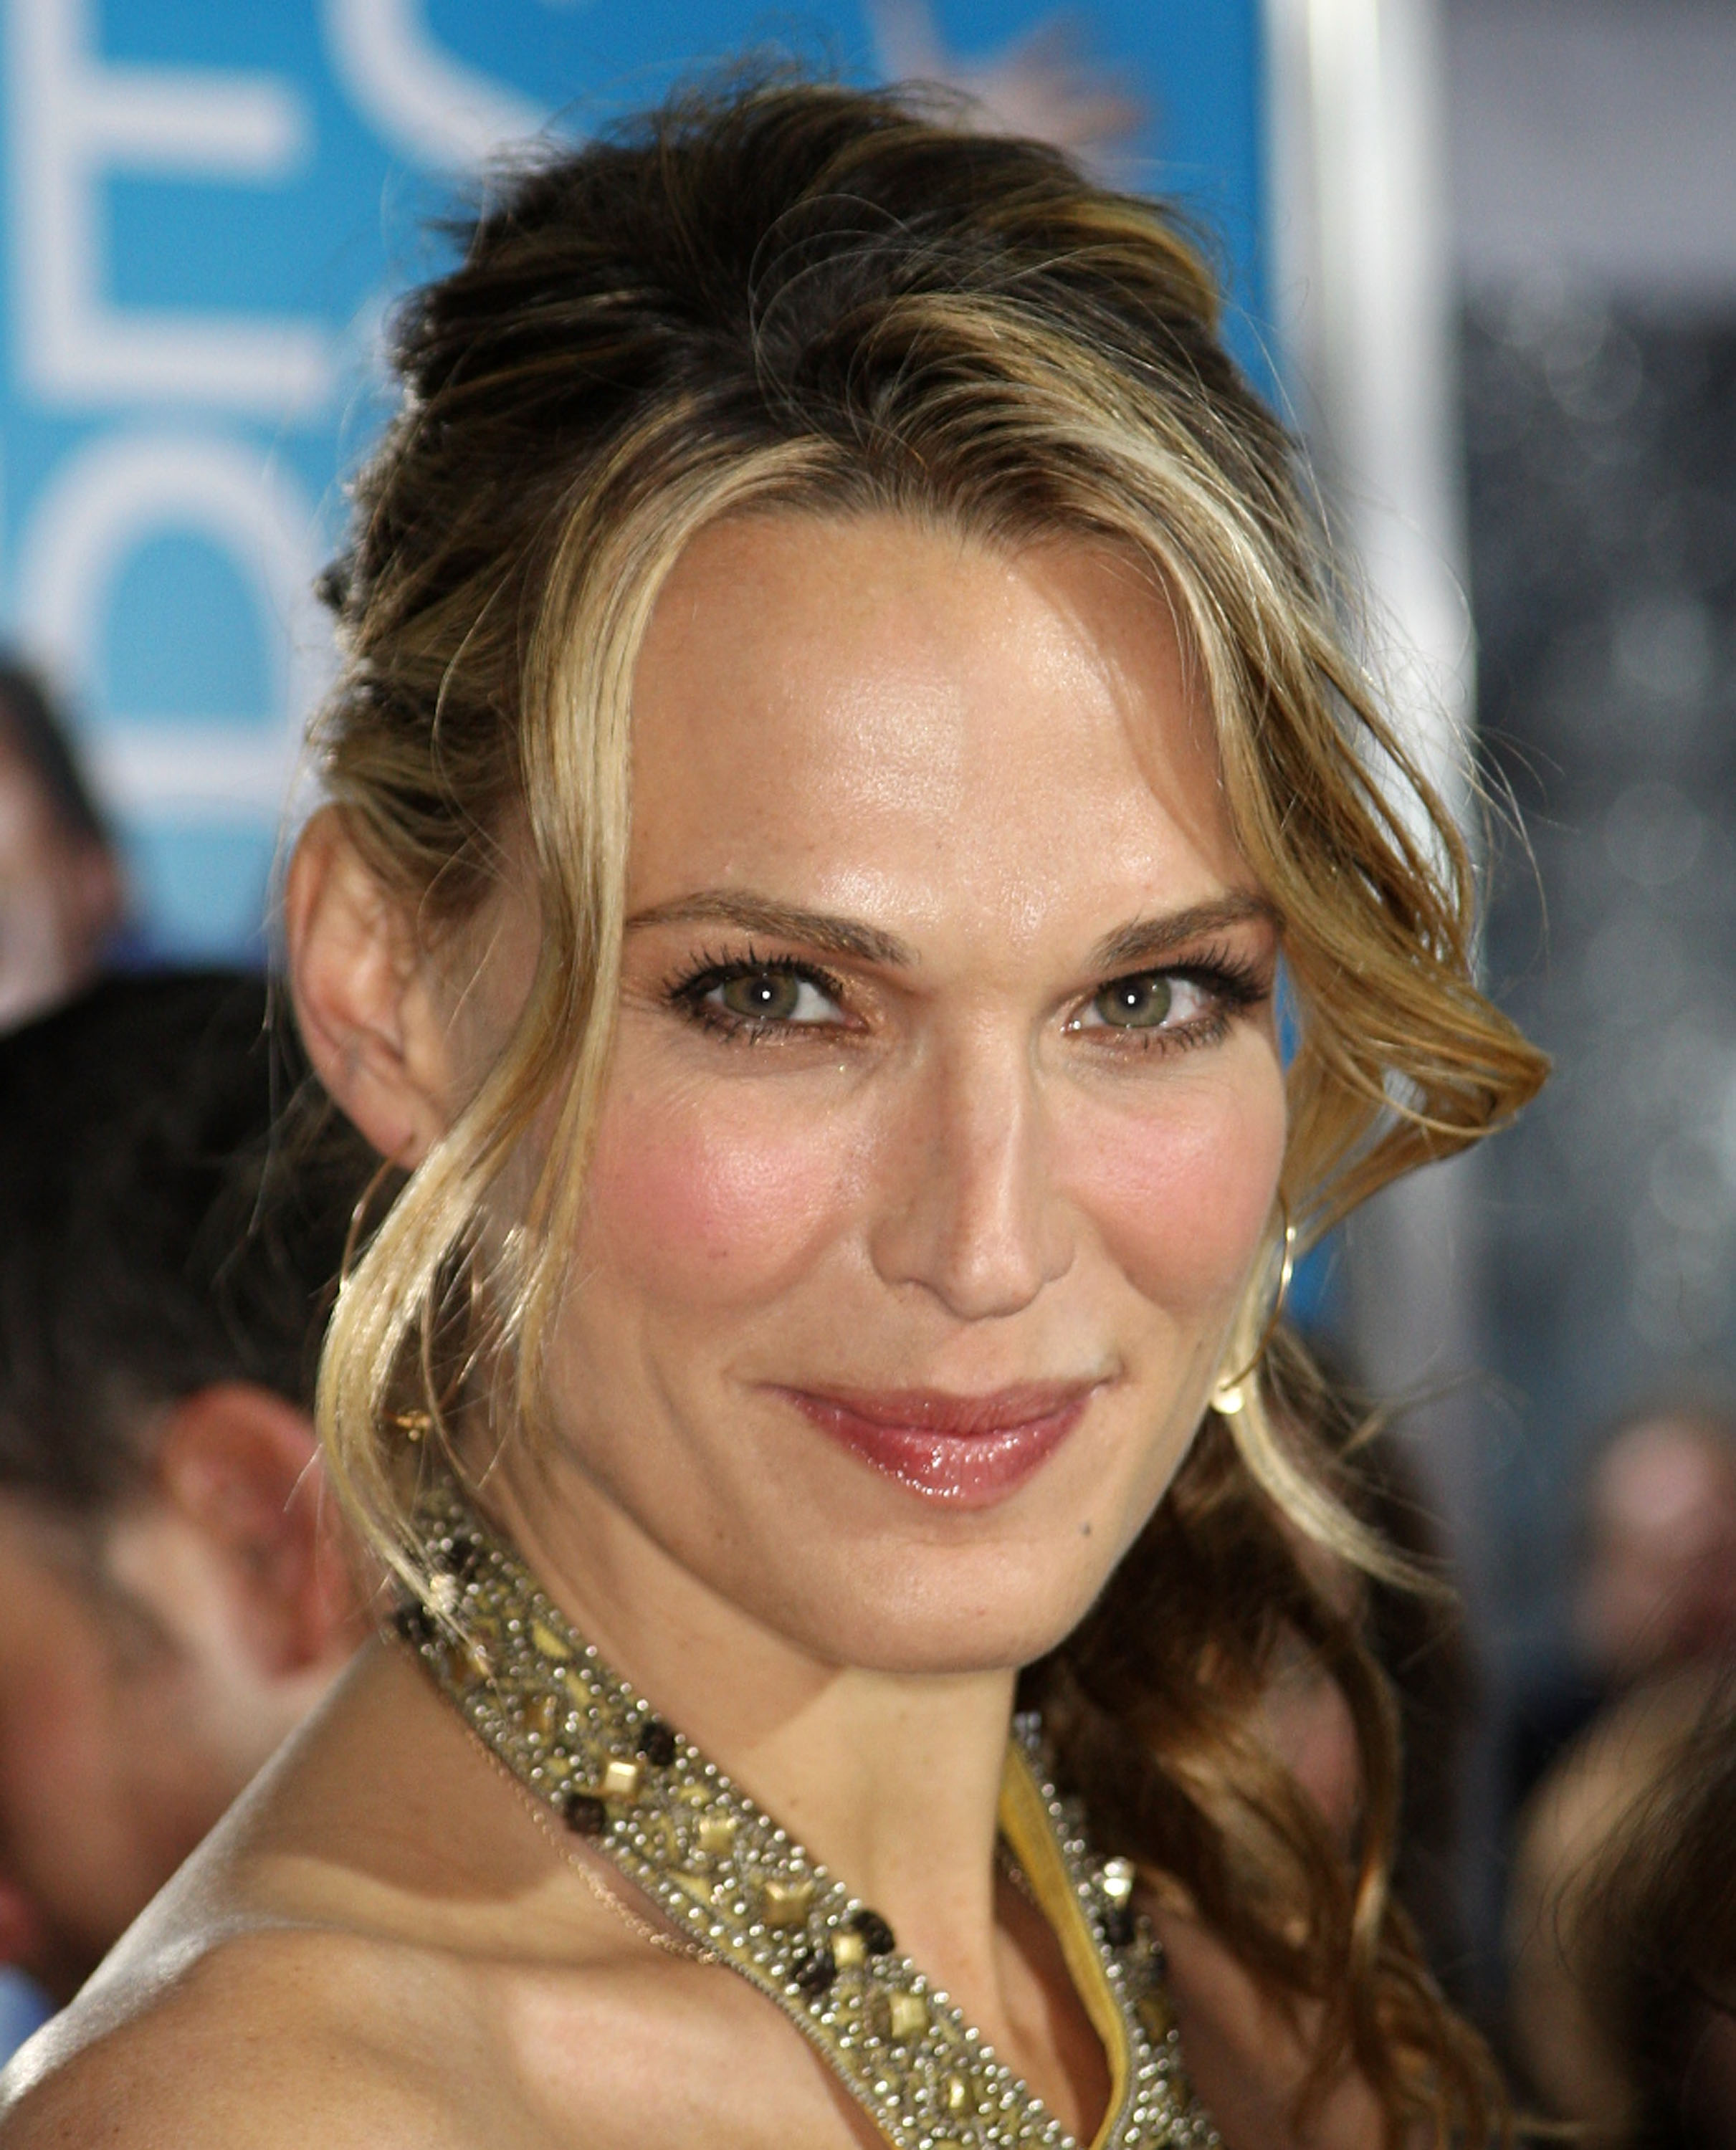 84101_Celebutopia-Molly_Sims-Yes_Man_premiere_in_Los_Angeles-08_122_660lo.jpg